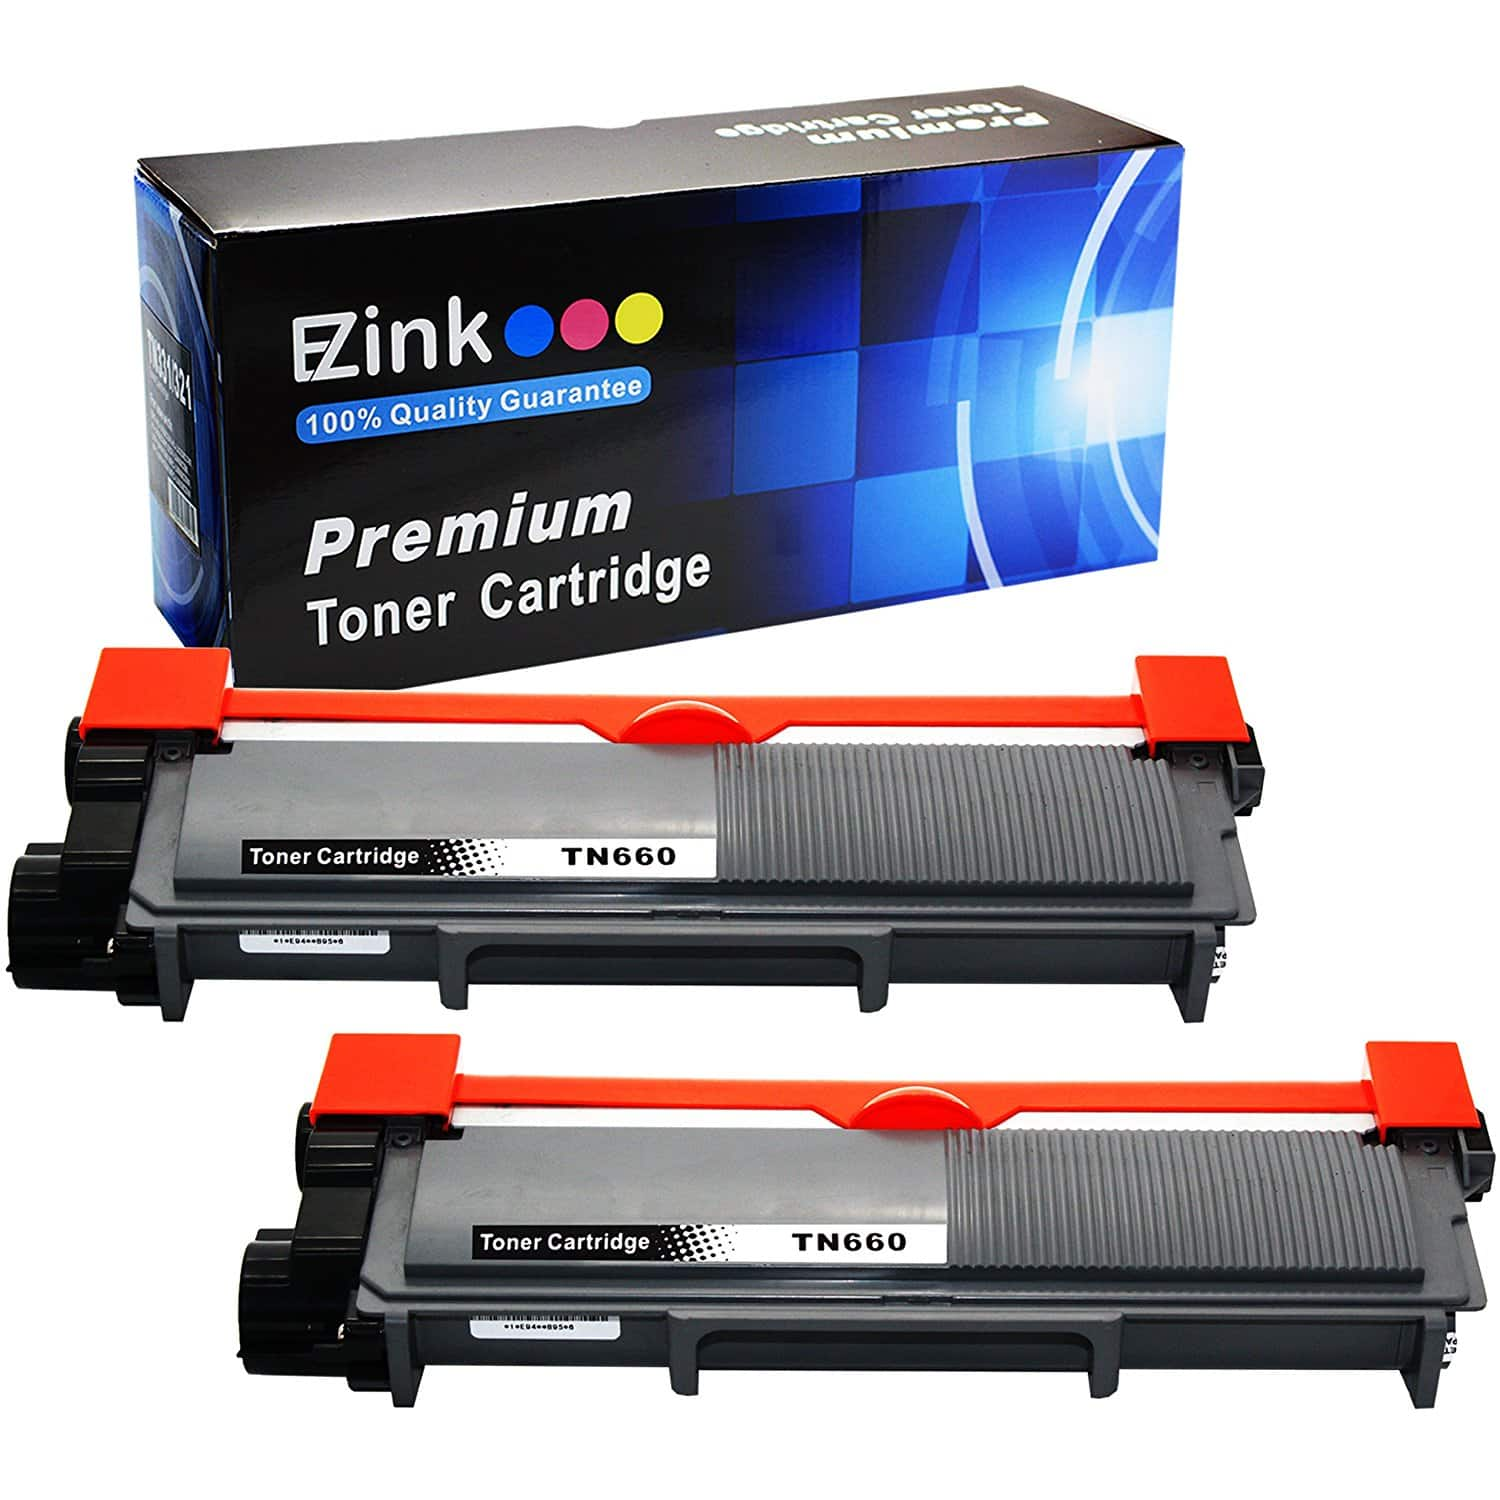 2 Pack Toner for Brother TN660 TN-660 brand E-Z Ink $13.23 (Amazon Lightening Deal)